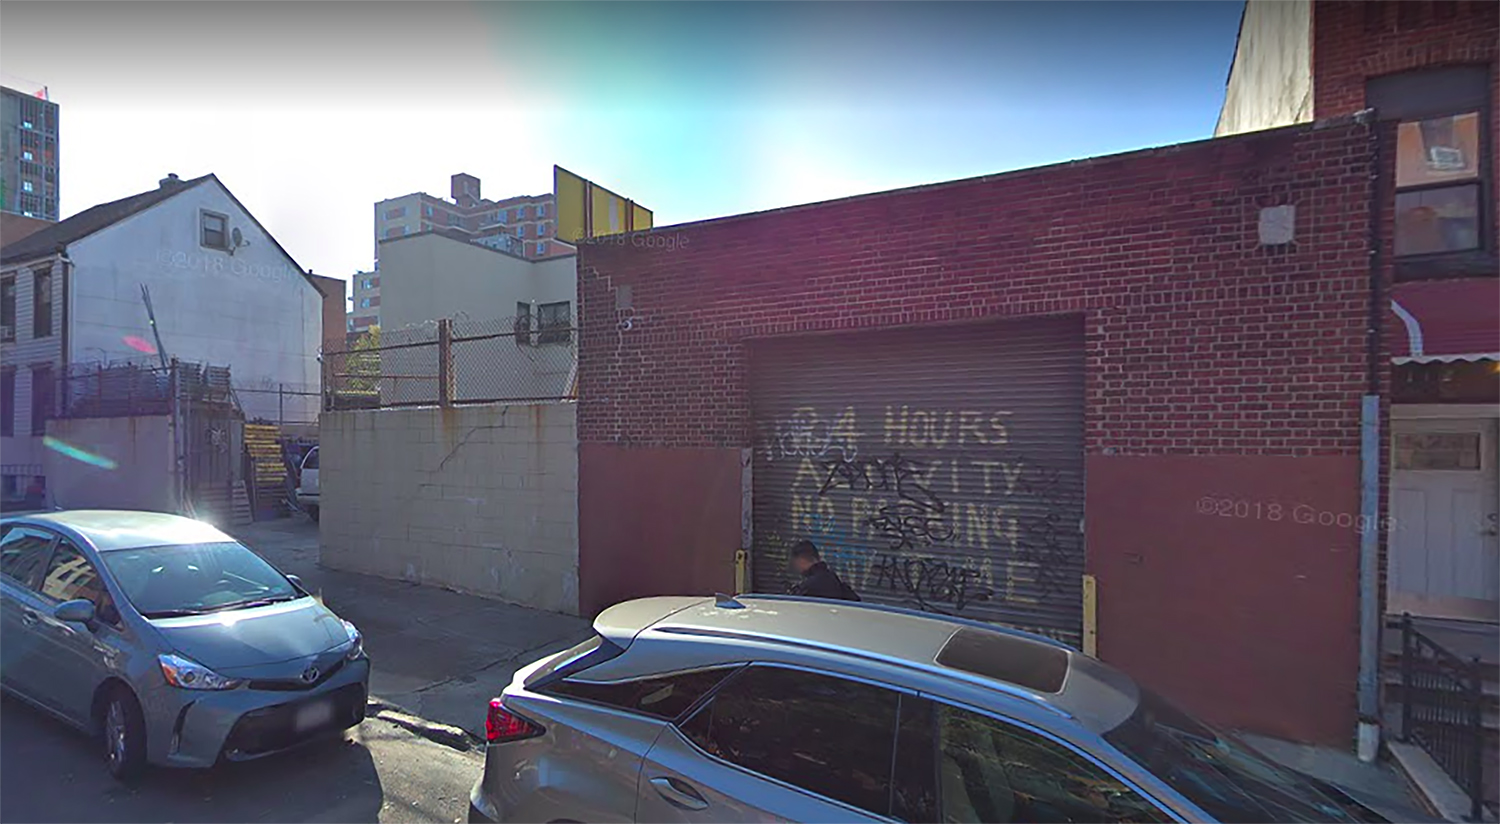 Existing garage structure at 114 15th Street (via Google Maps)